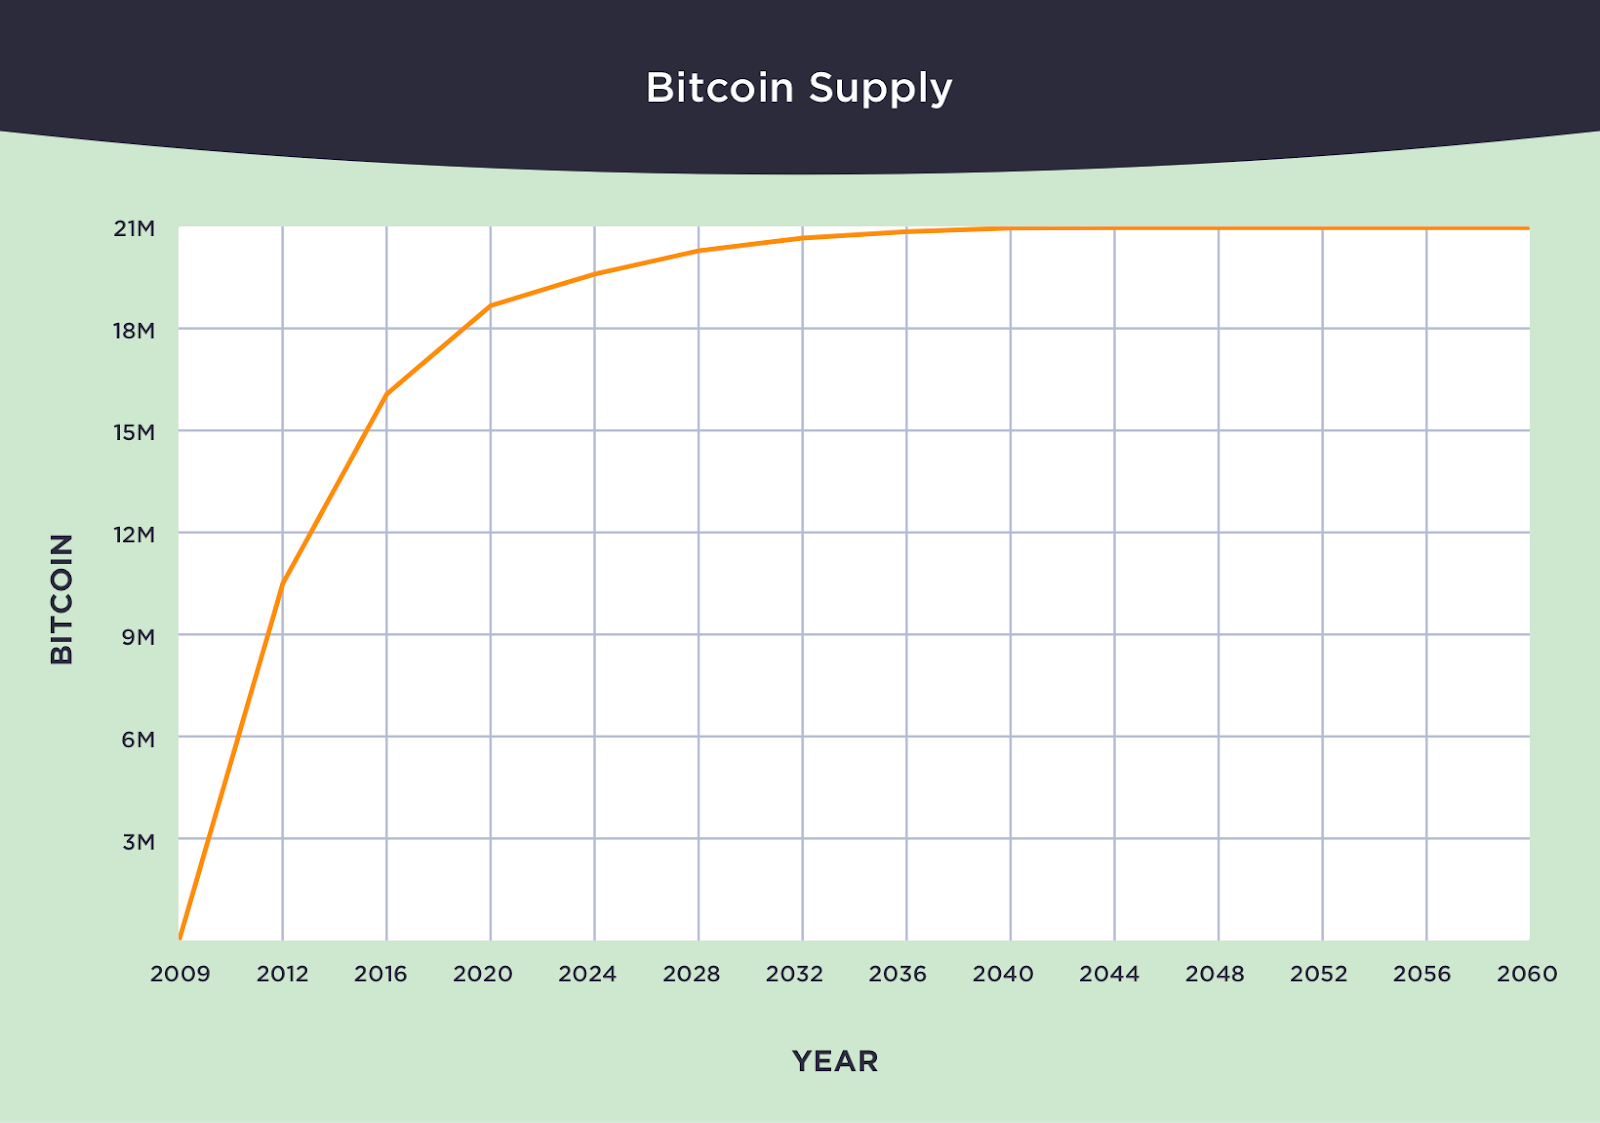 The supply curve of Bitcoin. Source: Winklevoss Capital